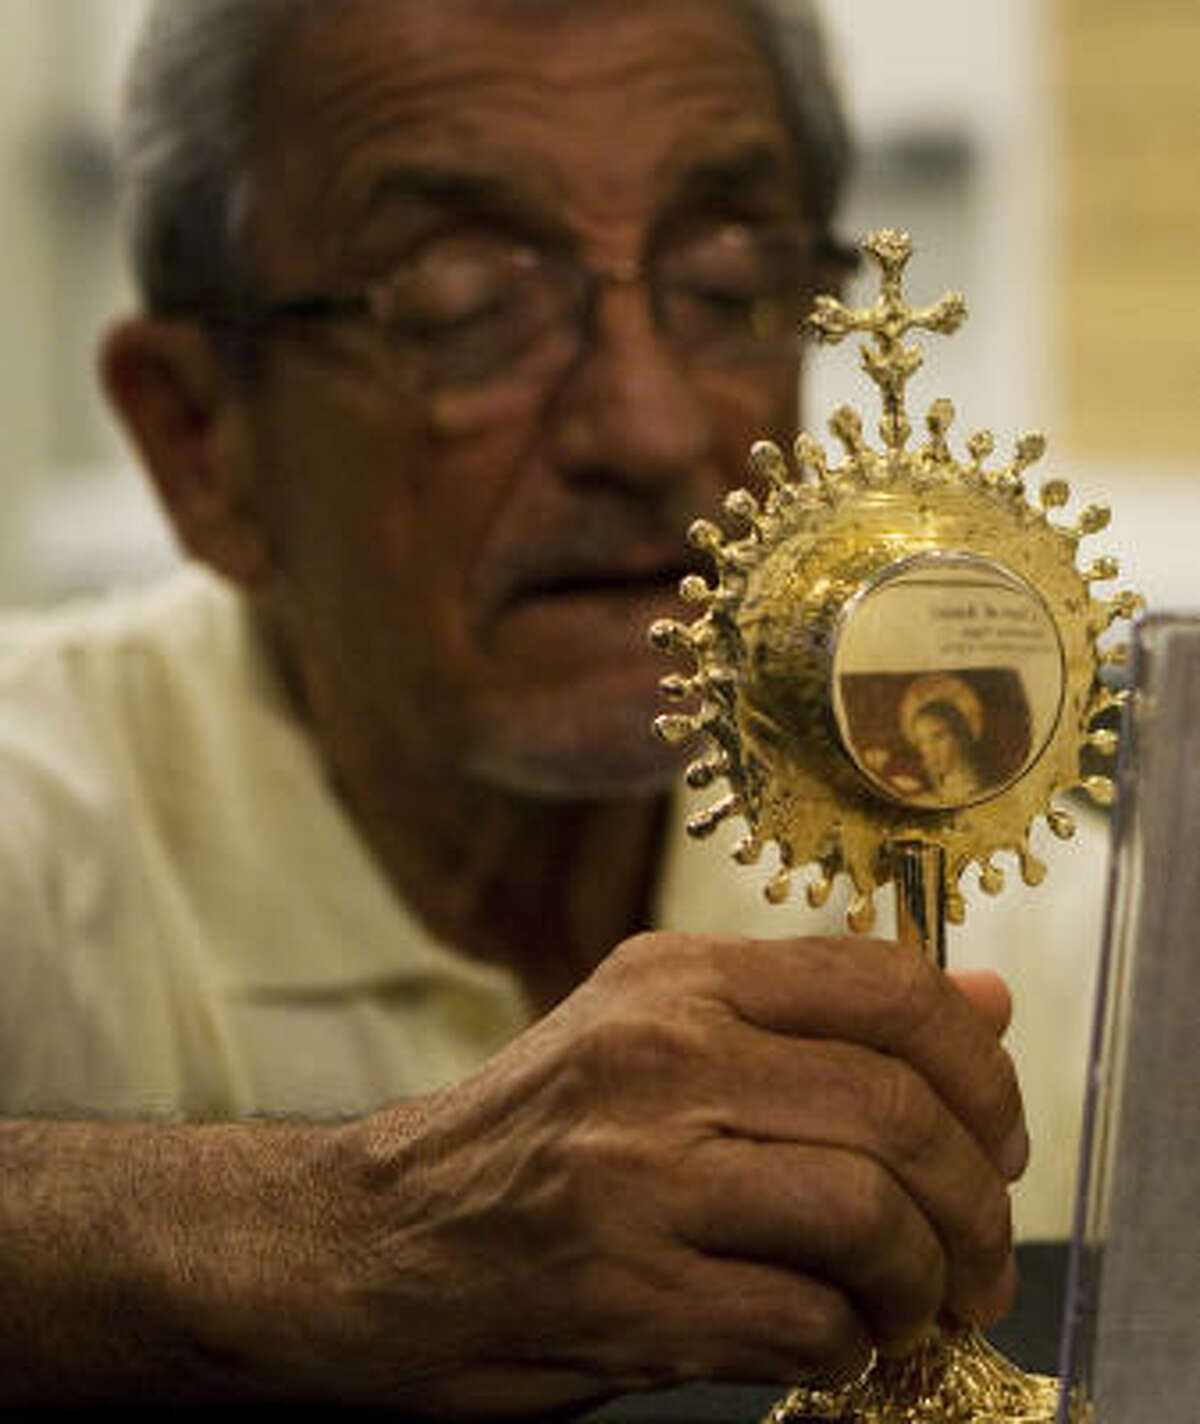 Rudy Salinas kneels down to look at a relic of St. Clare of Assisi during a display of the